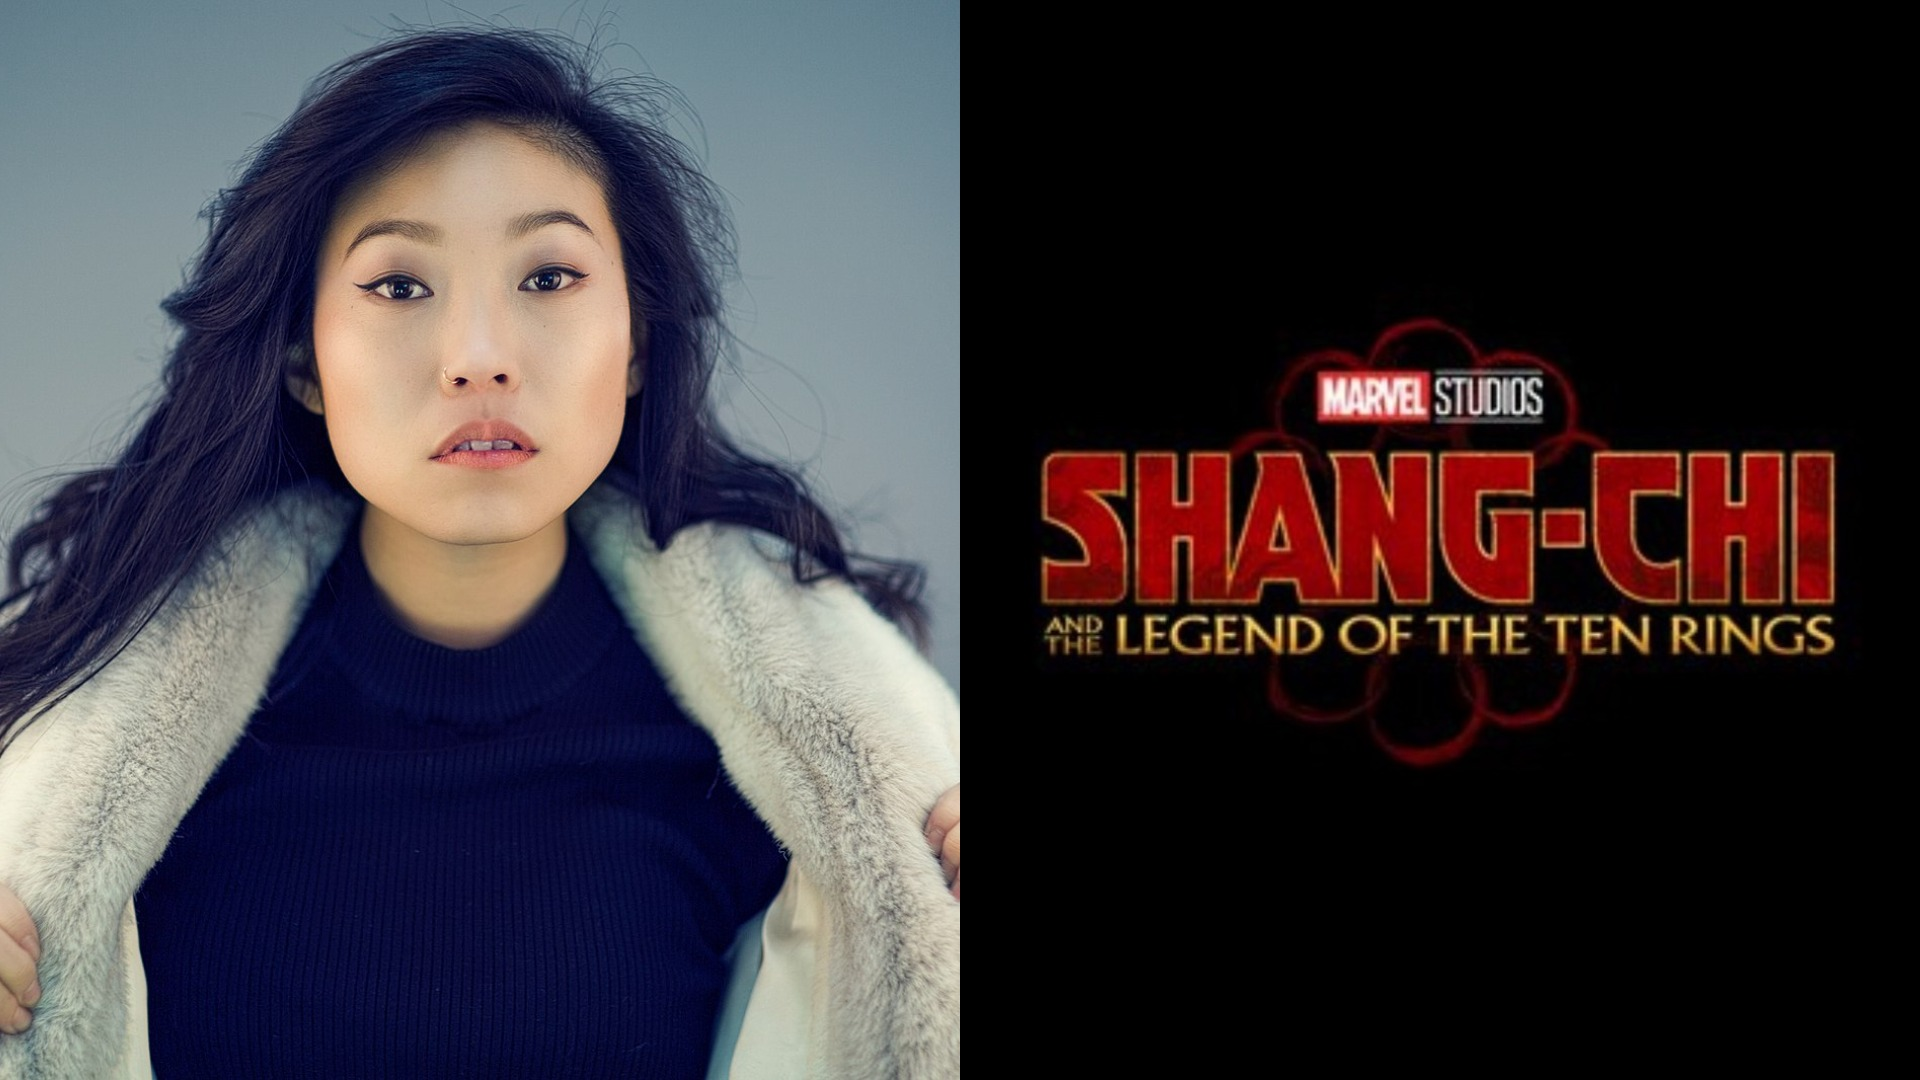 www.weareresonate.com: Awkwafina says she was 'blown away' by 'Shang-Chi's' Asian representation